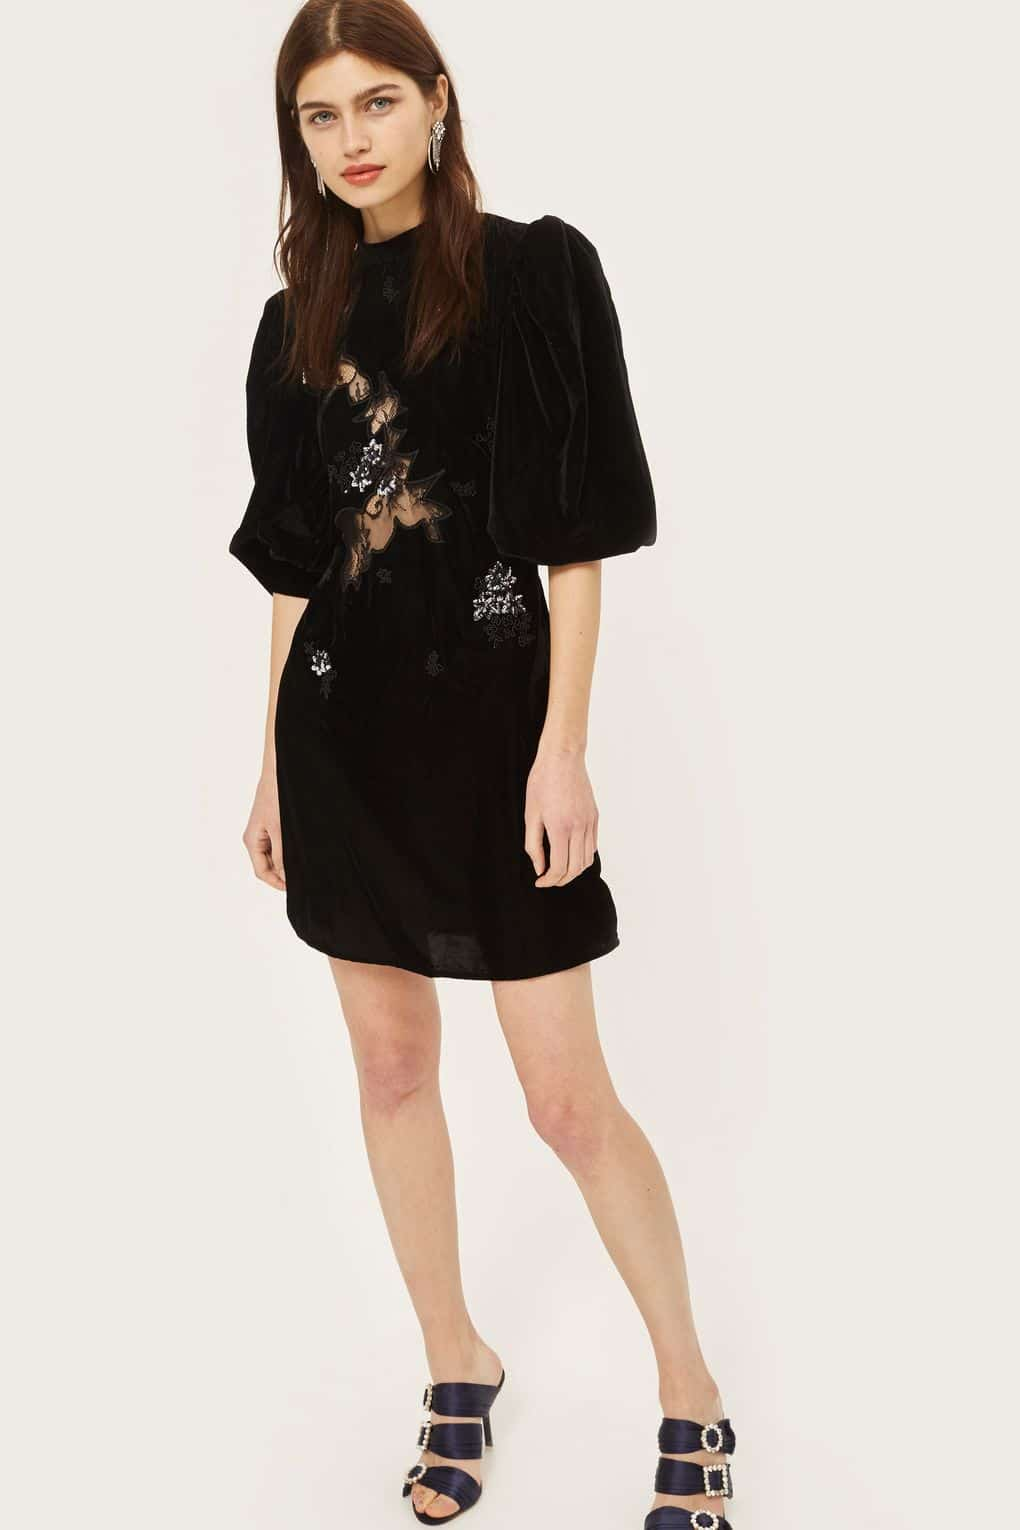 TOP SHOP Cutwork Lace Panel Black Dress